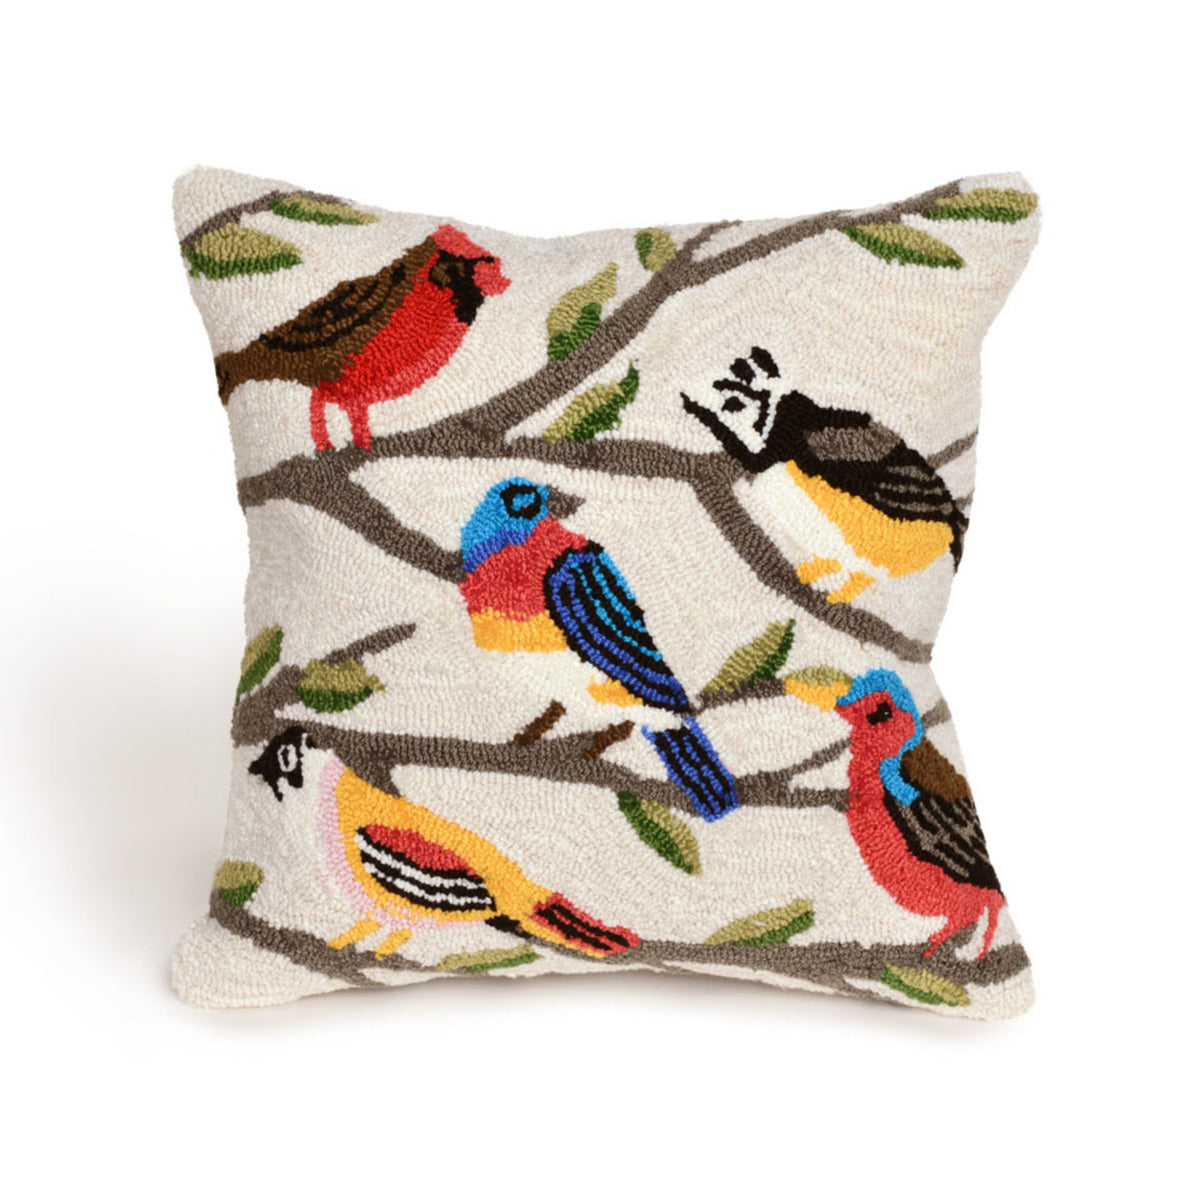 Frontporch Birds Cream Pillows